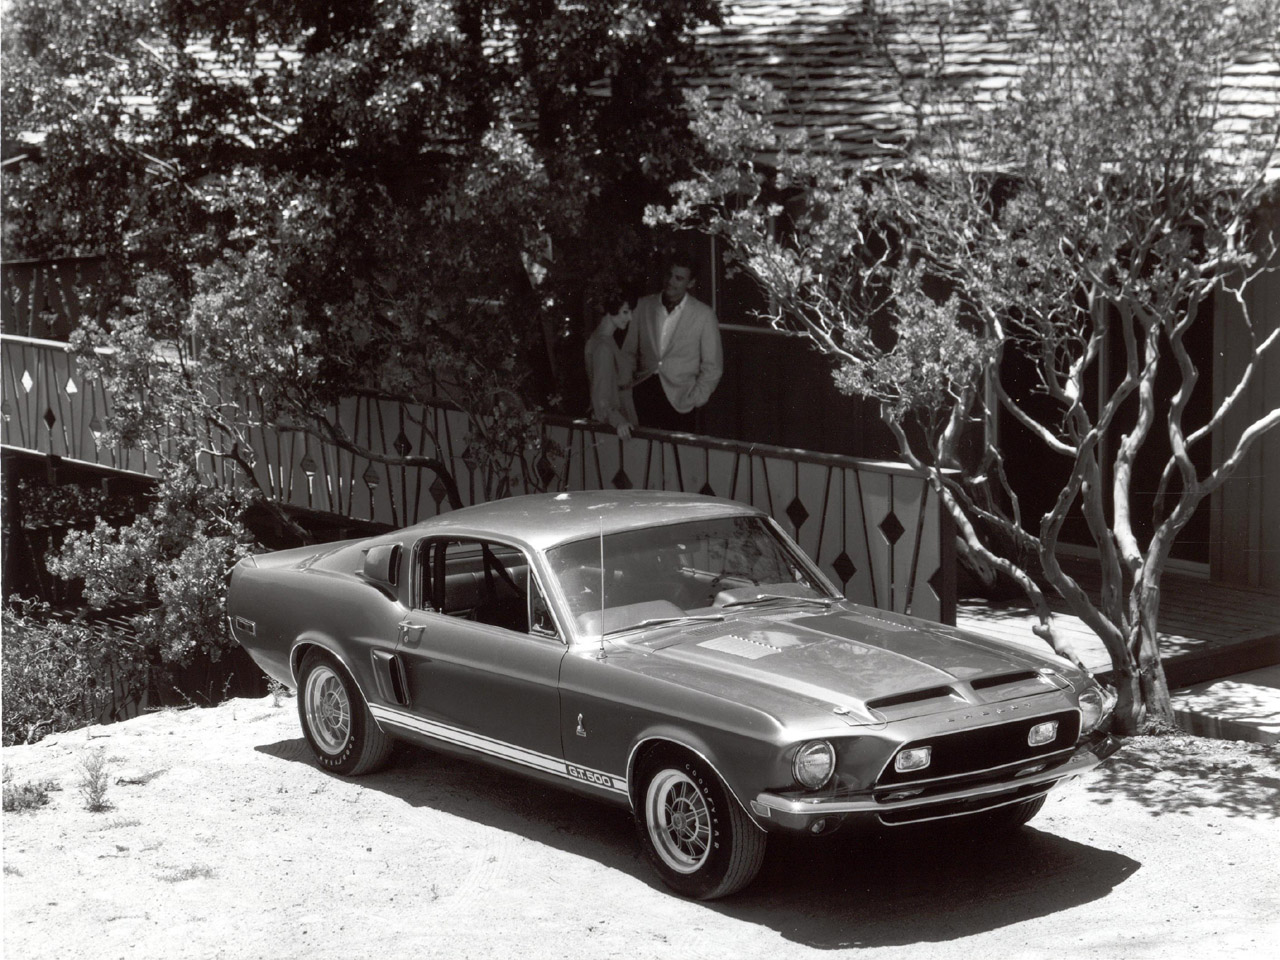 AmericanMuscle brings the classic style of the early Mustangs with Mustang